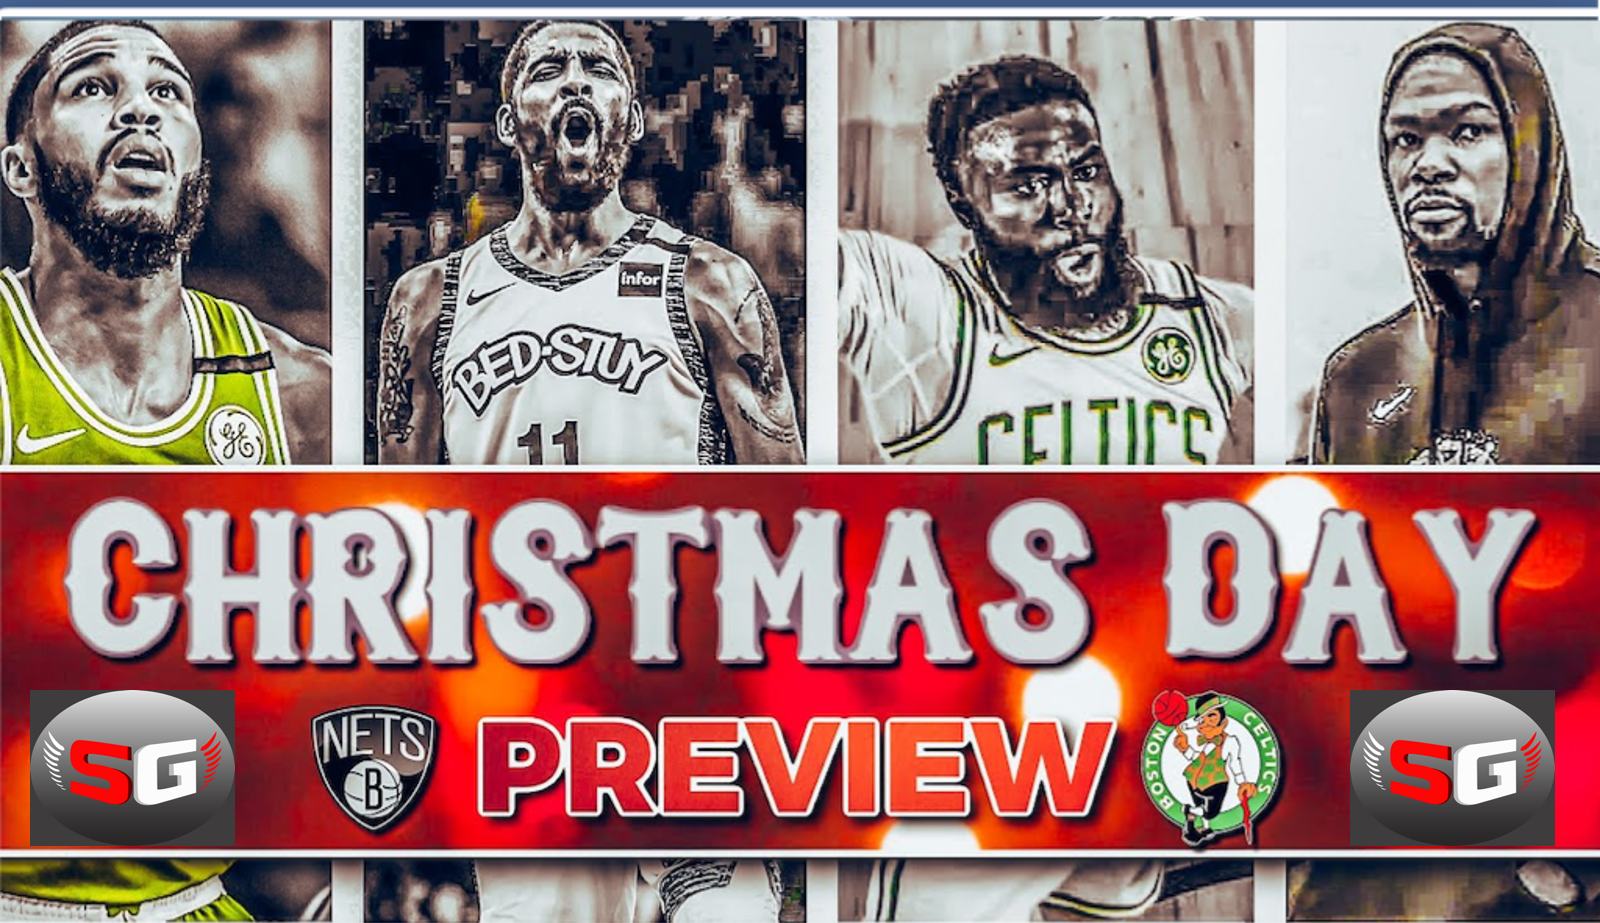 Brooklyn Nets Vs Boston Celtics-Game Day Preview: 12.25.2020